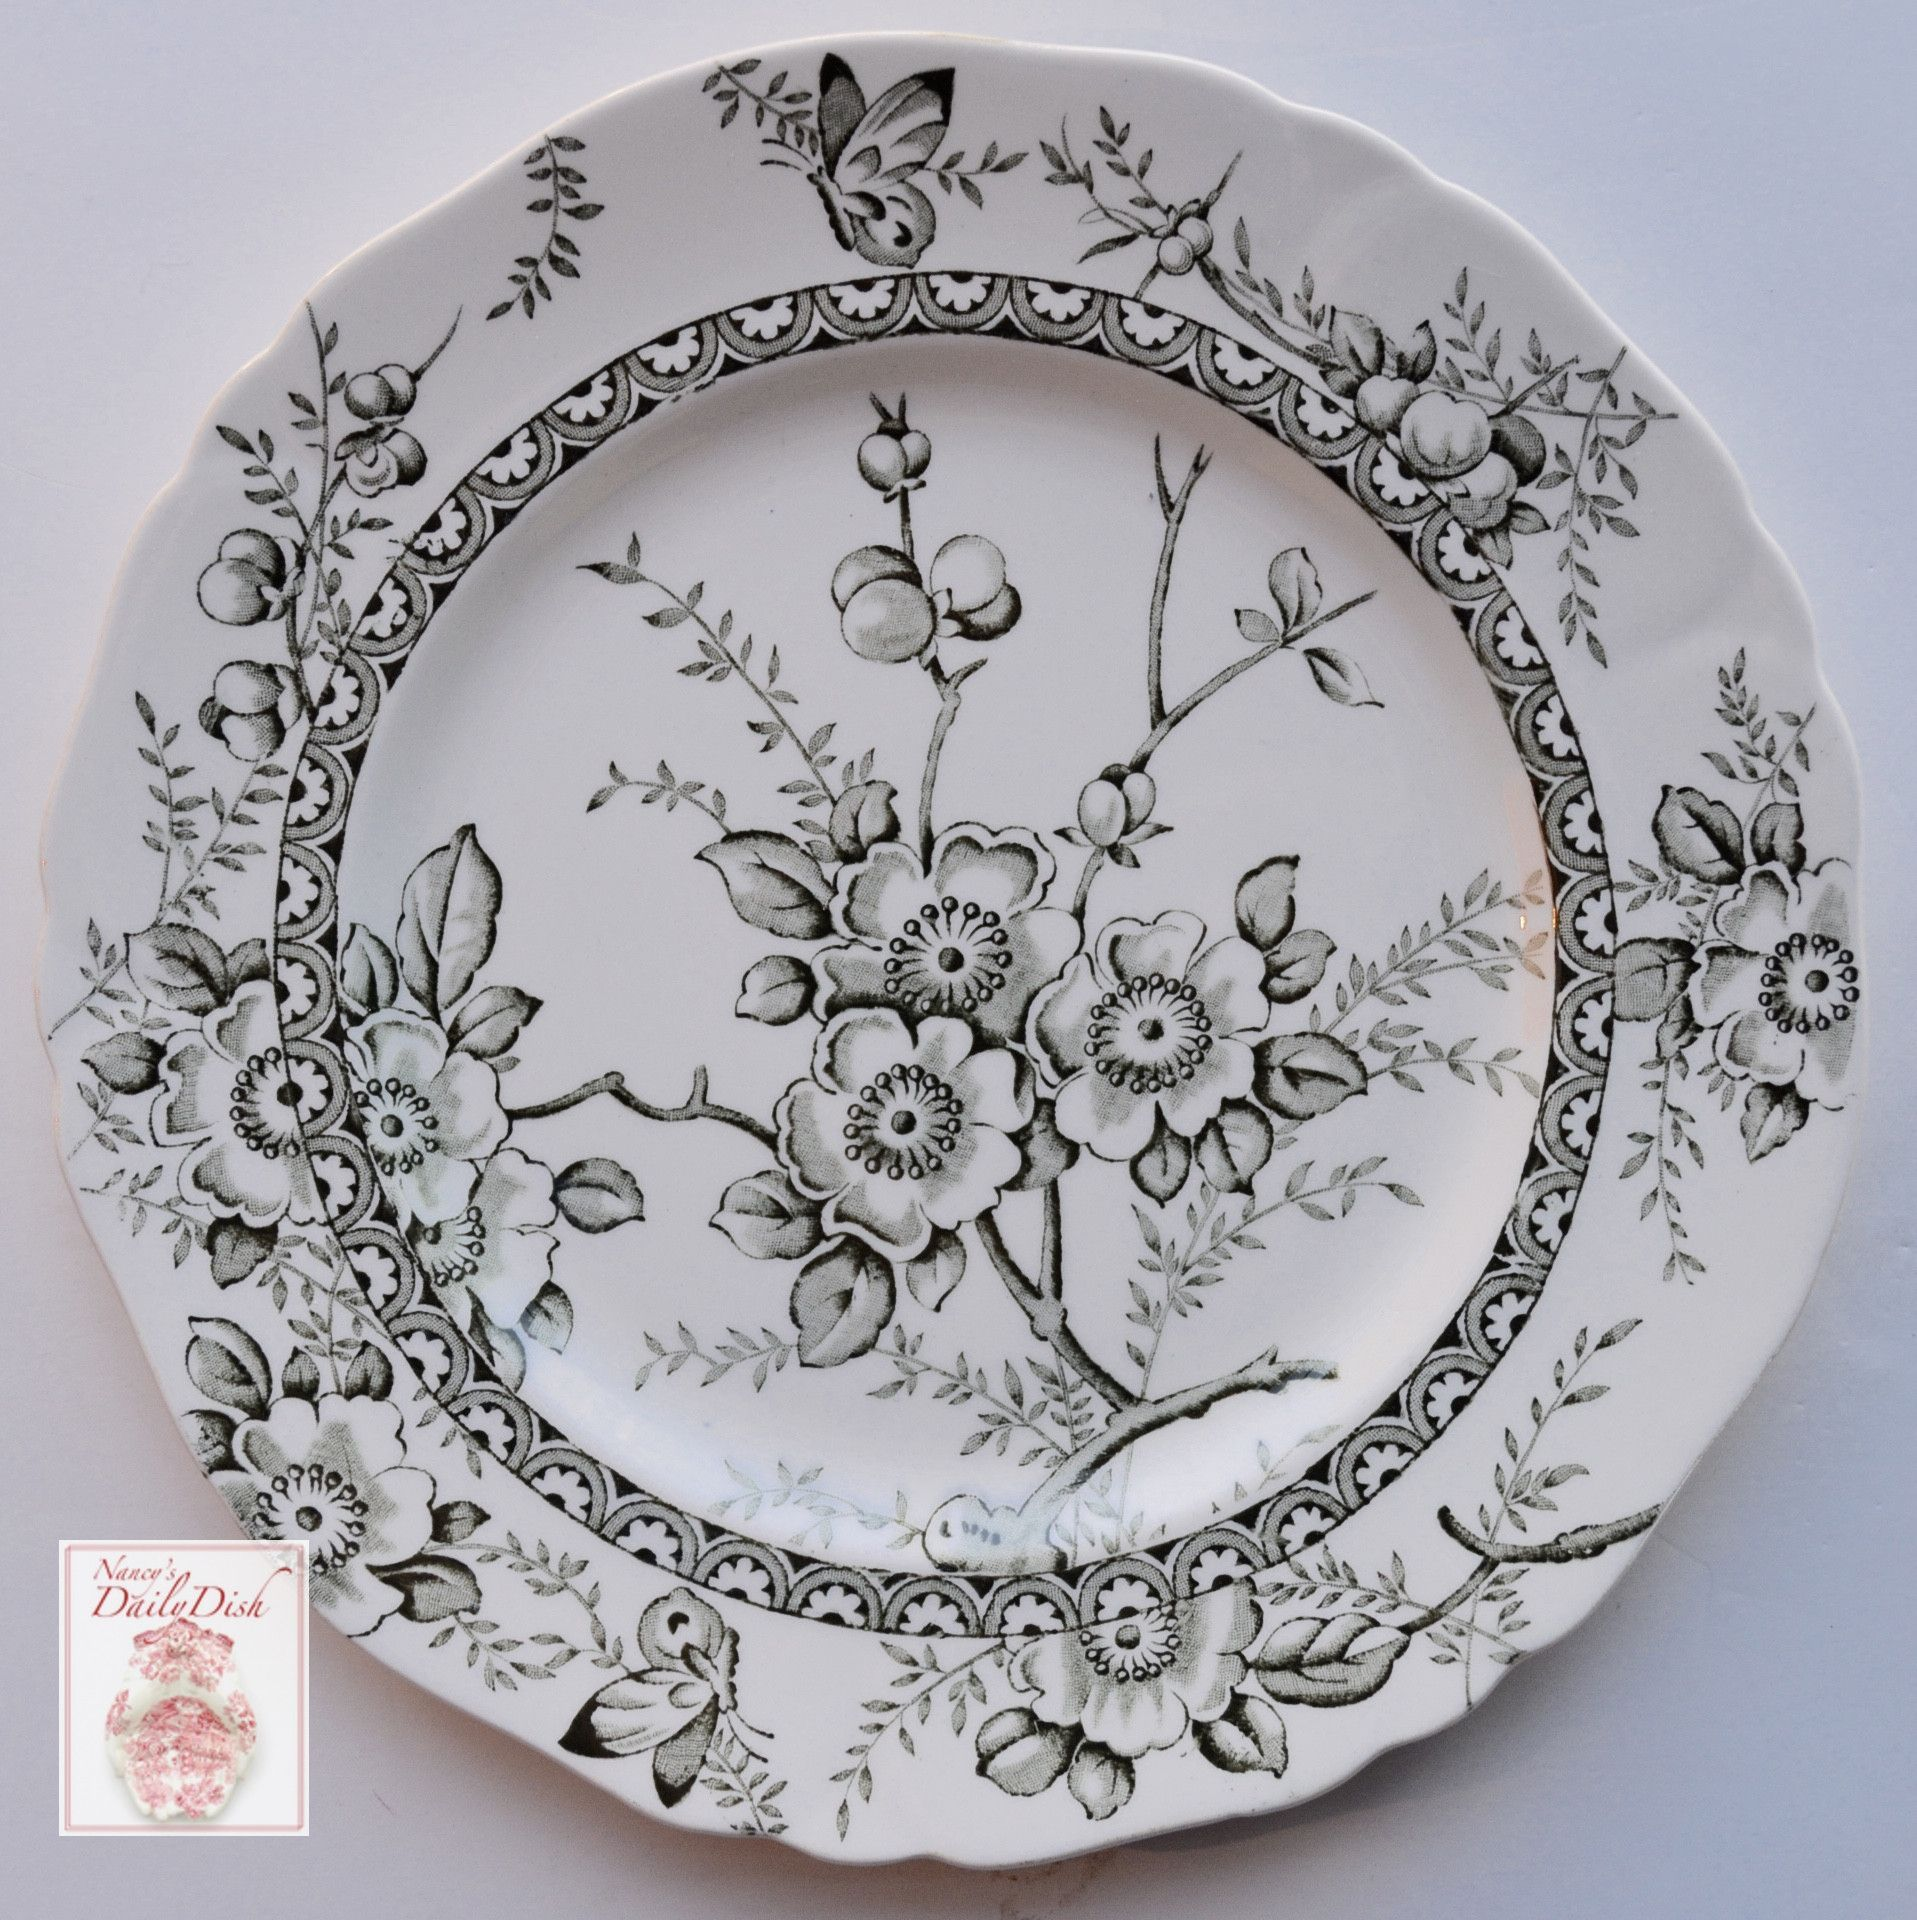 Green Toile English Transferware Plate Butterfly Flowers Berries